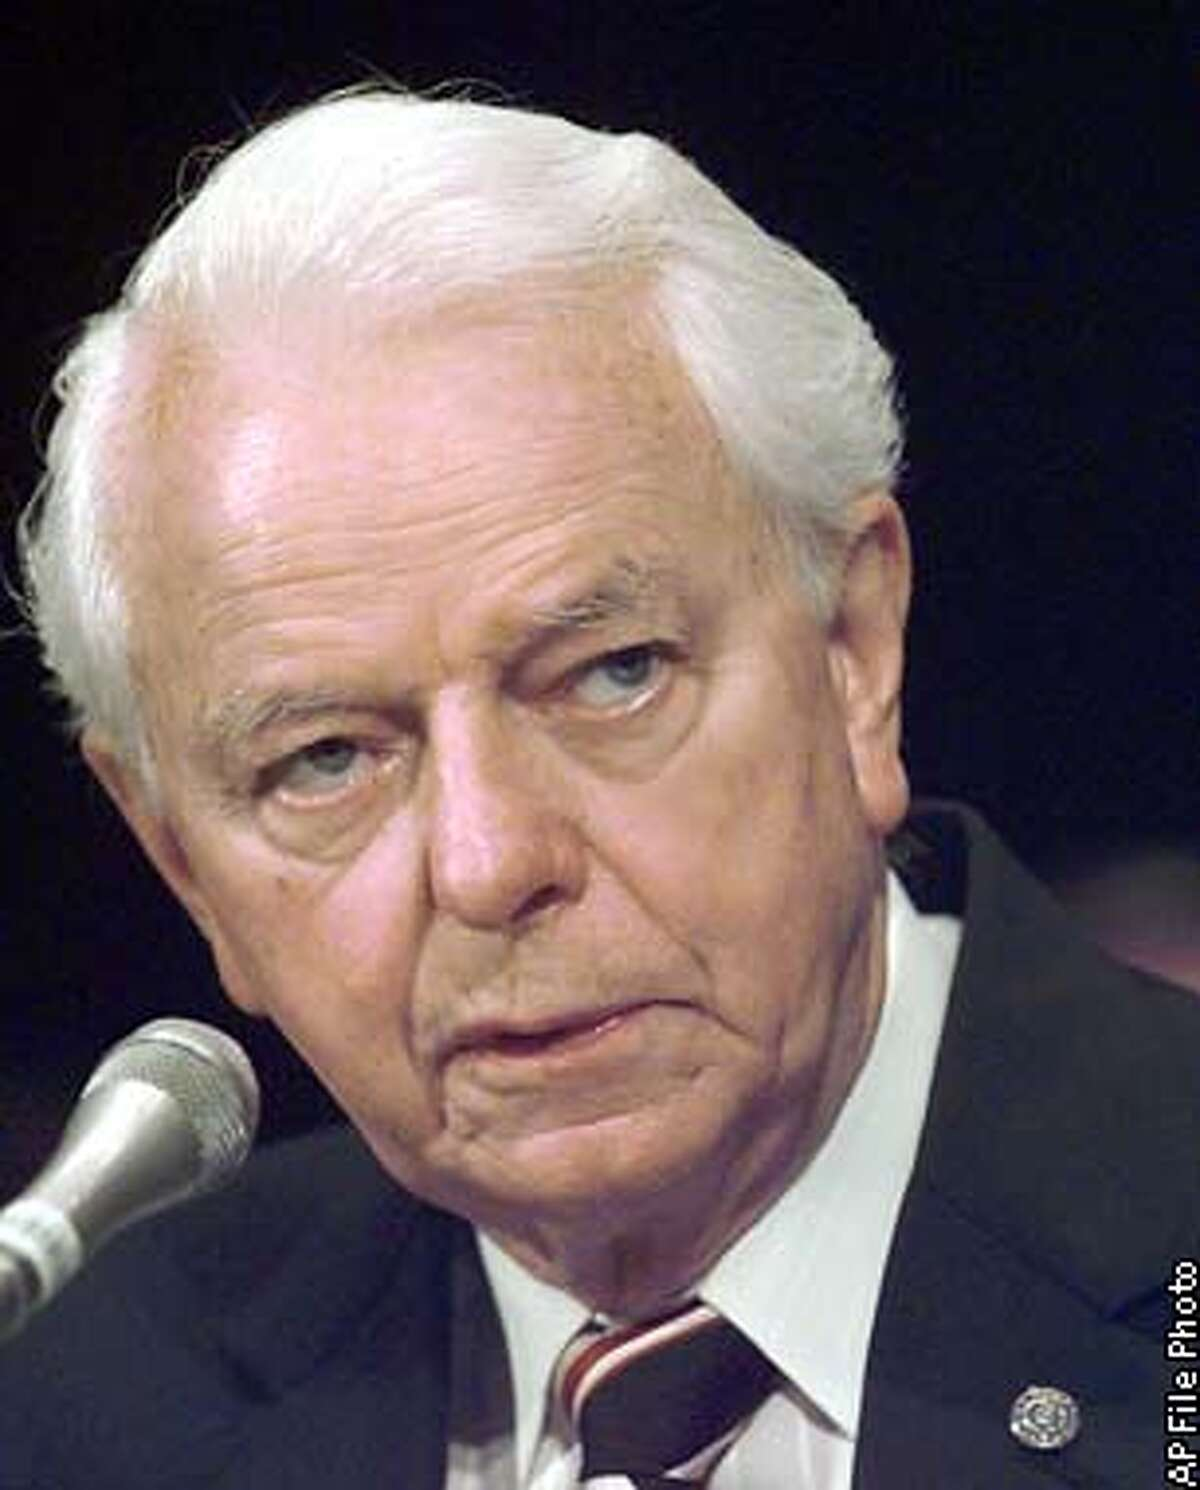 FILE-- Sen. Robert Byrd, D-W.Va. is shown in this Sept. 9, 1998, file photo. Byrd is giving up congressional immunity and paying a fine for causing a fender-bender on Mother's Day weekend. The office of the West Virginia Democrat told prosecutors that the 81-year-old senator doesn't want special treatment in the May 7, 1999 accident. Byrd was given a ticket for following too closely, but the citation was revoked under a constitutional provision that grants members of Congress immunity from arrest while Congress is in session, with few exceptions. (AP Photo/Joe Marquette/file) ALSO RAN 7/25/2001, 04/22/02, 8/4/02